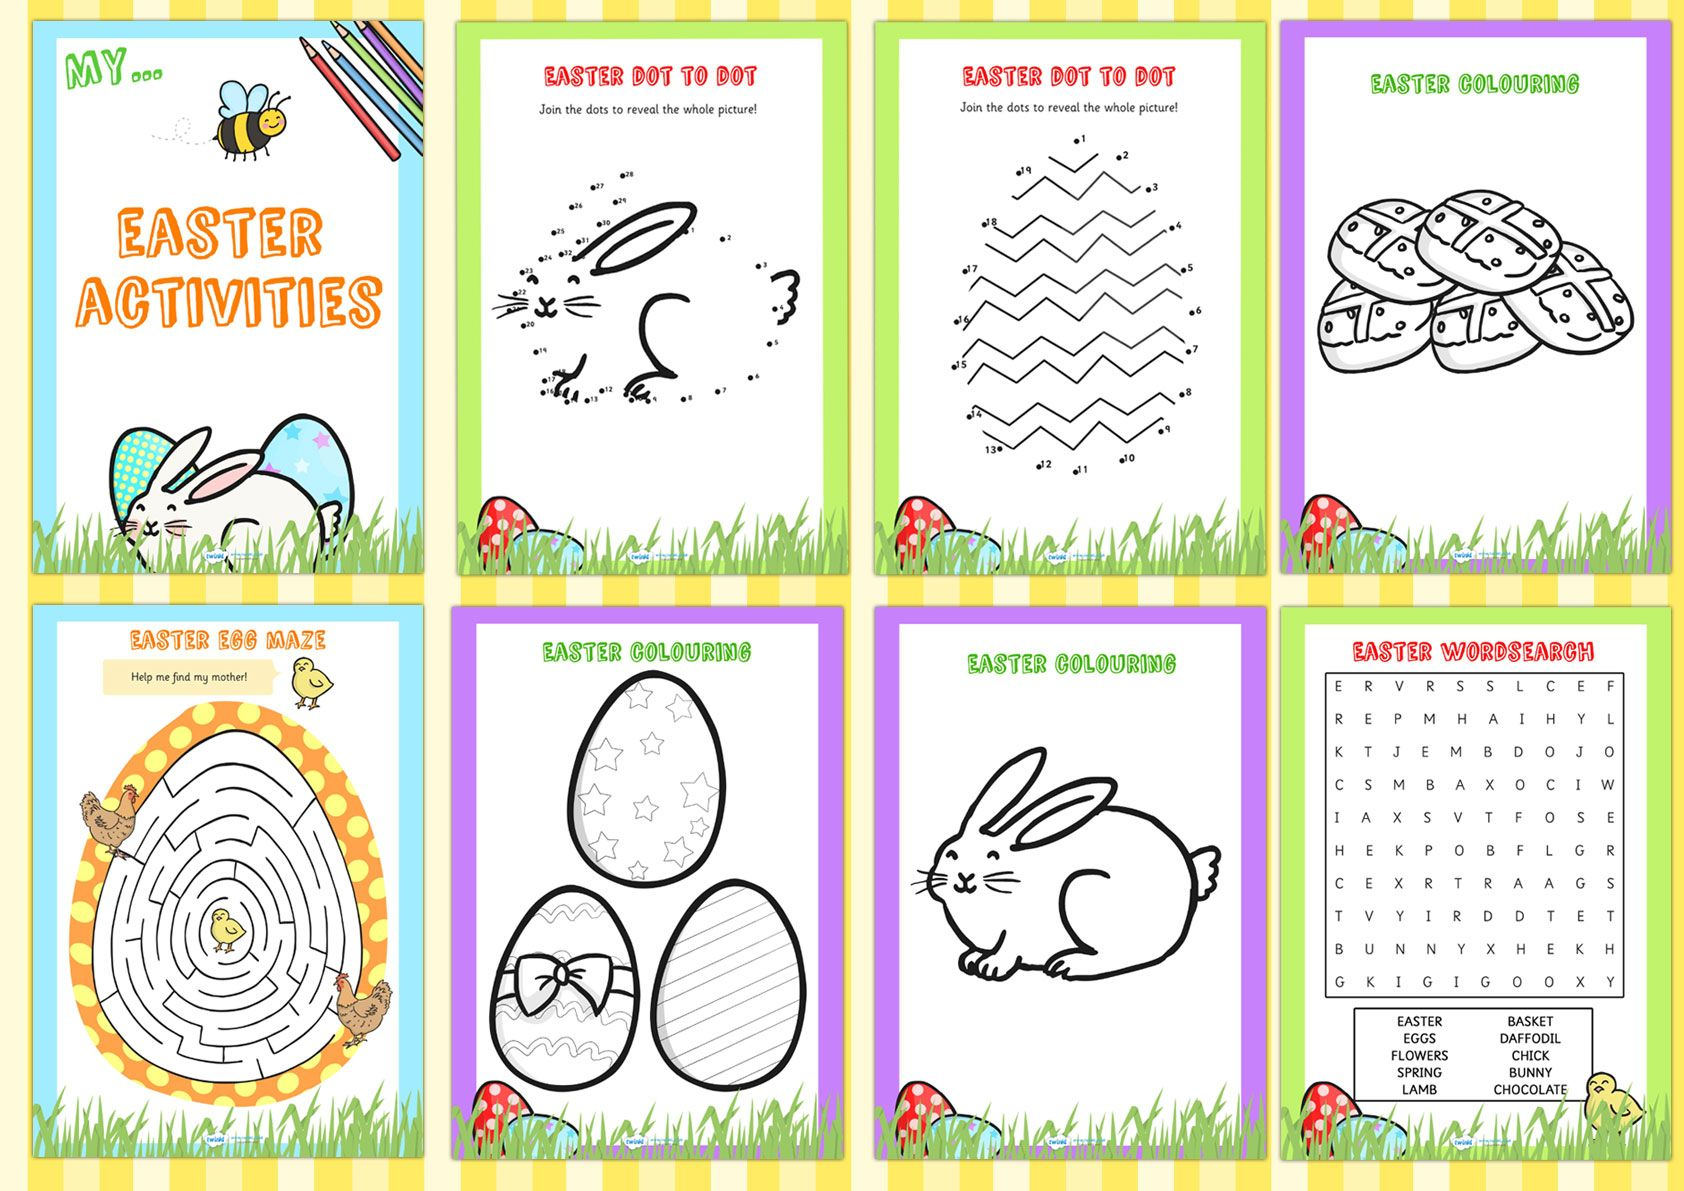 Easter Activity Booklet Pop Over To Our Site At Www Twinkl Co Uk And Check Out Our Lovely Easter Primary Te Easter School Easter Activities Easter Printables